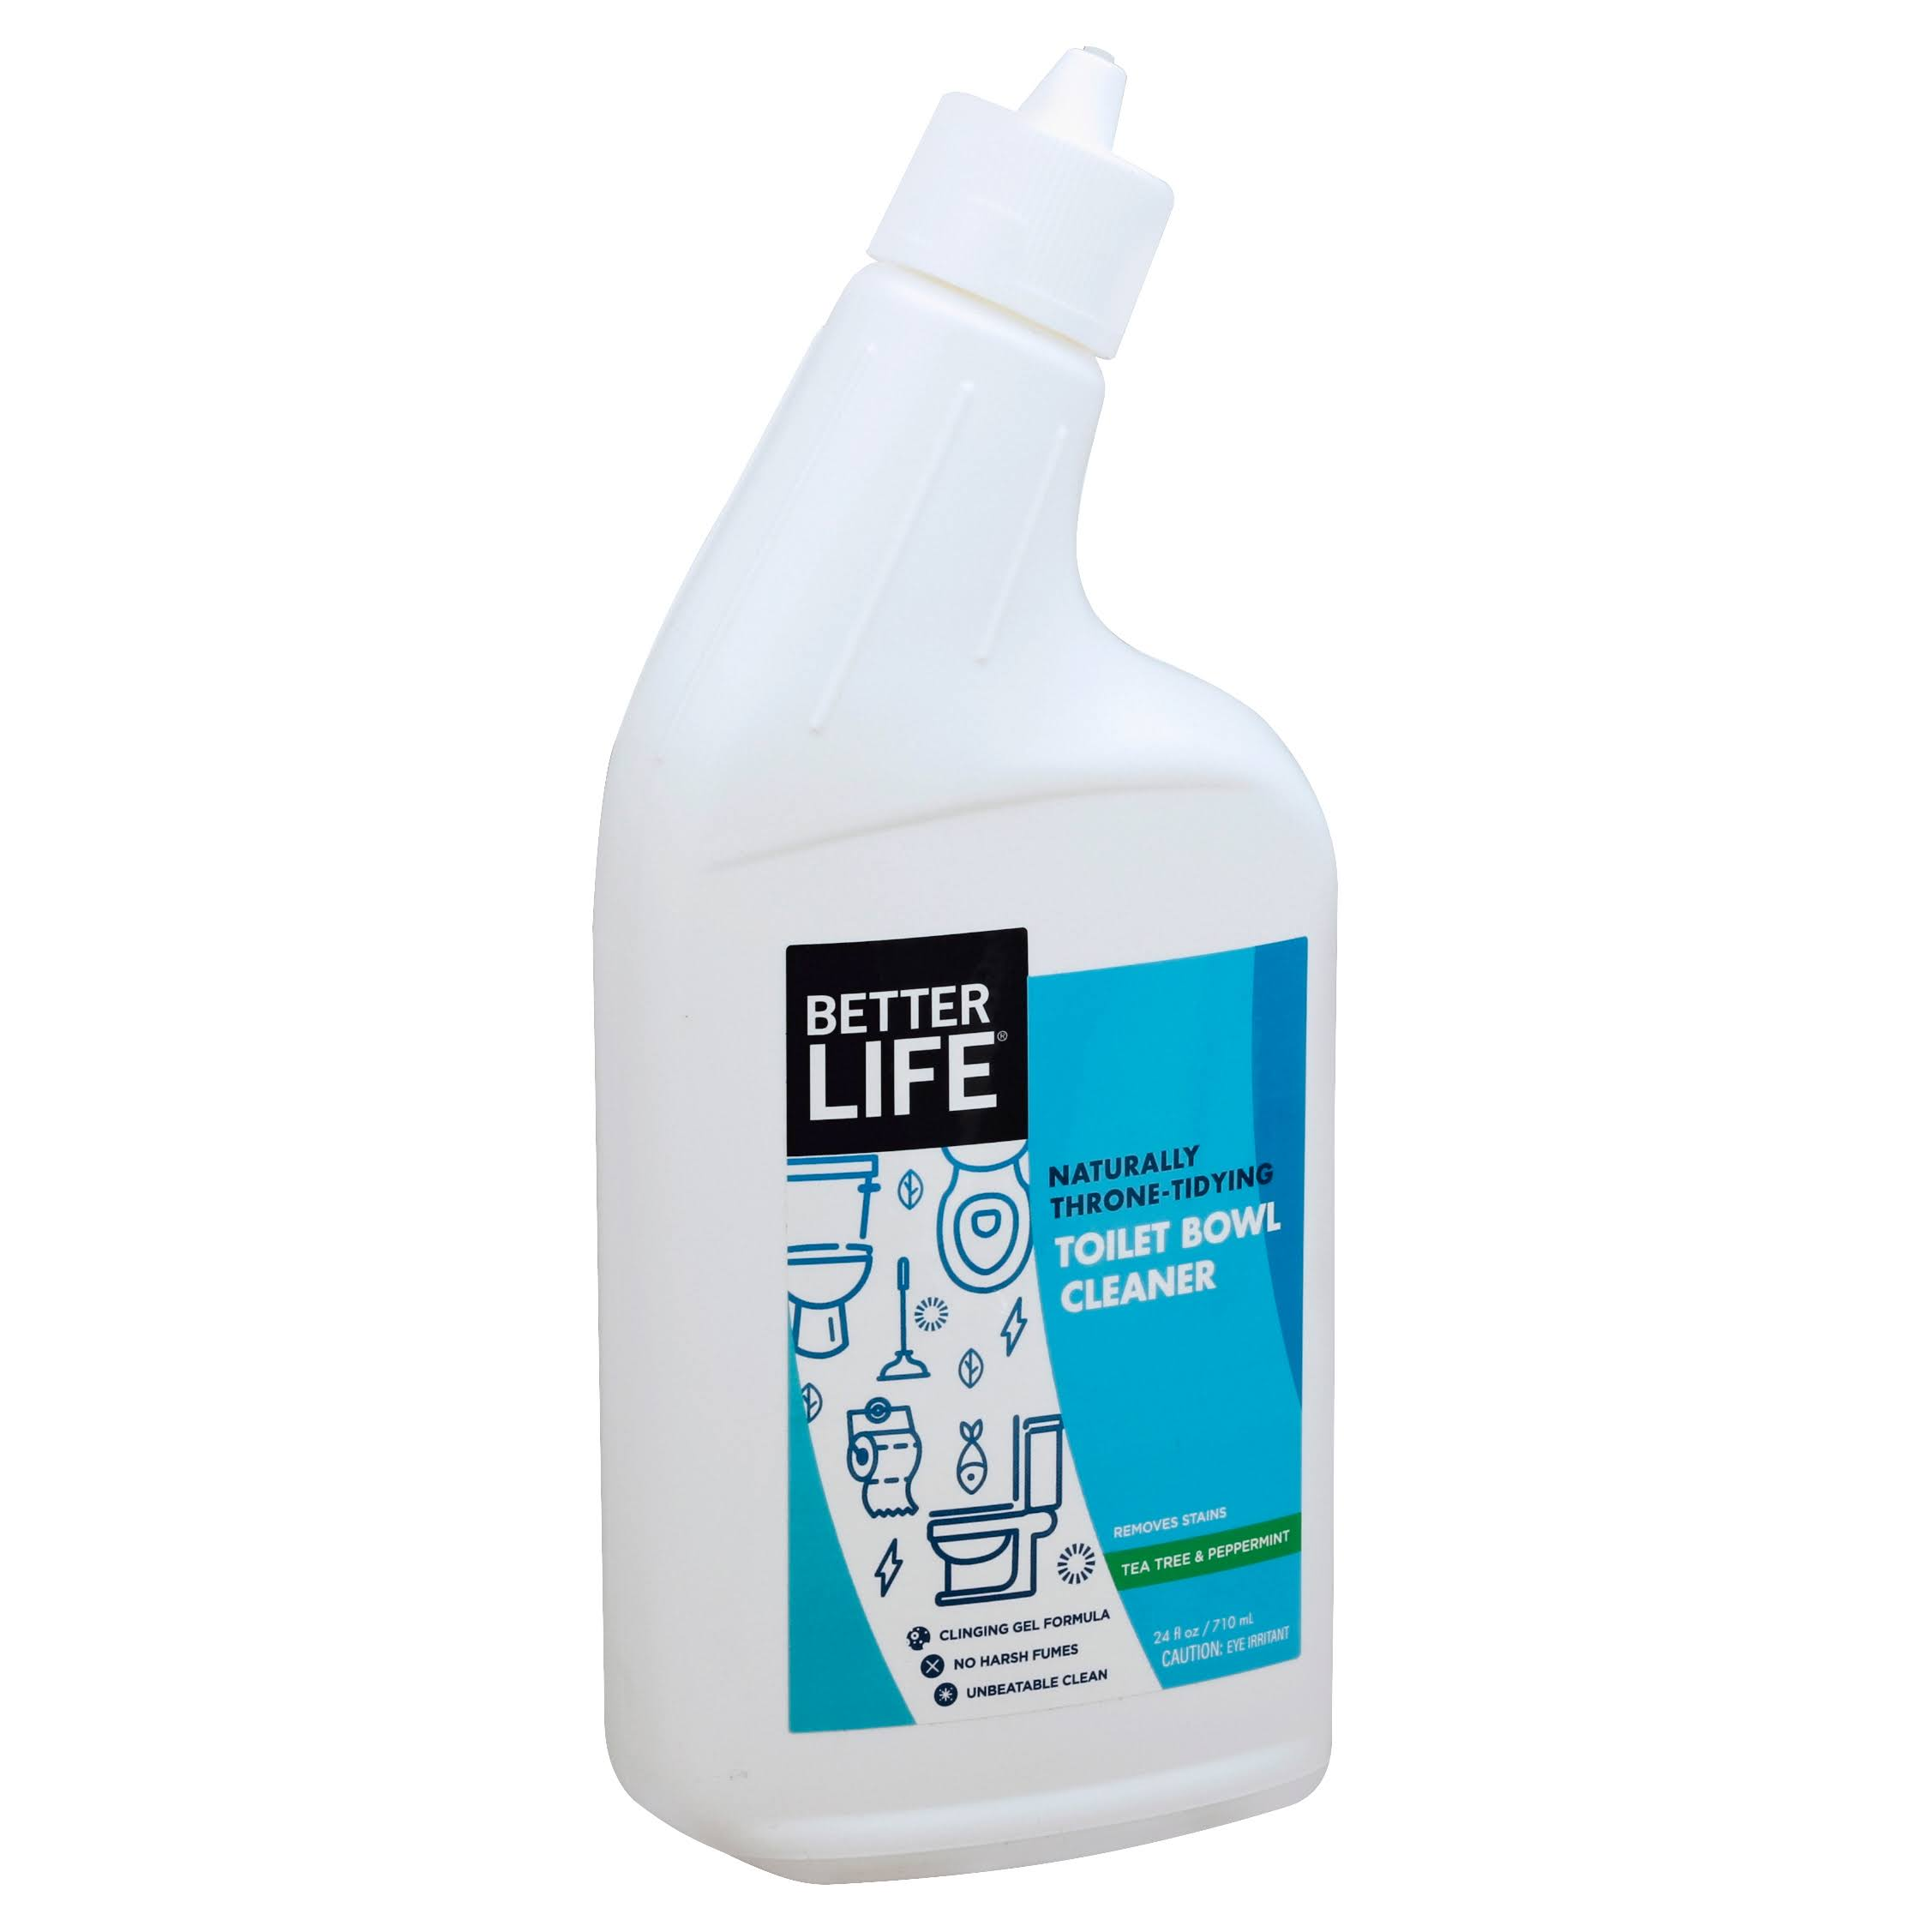 Better Life Toilet Bowl Cleaner, Tea Tree & Peppermint - 24 fl oz